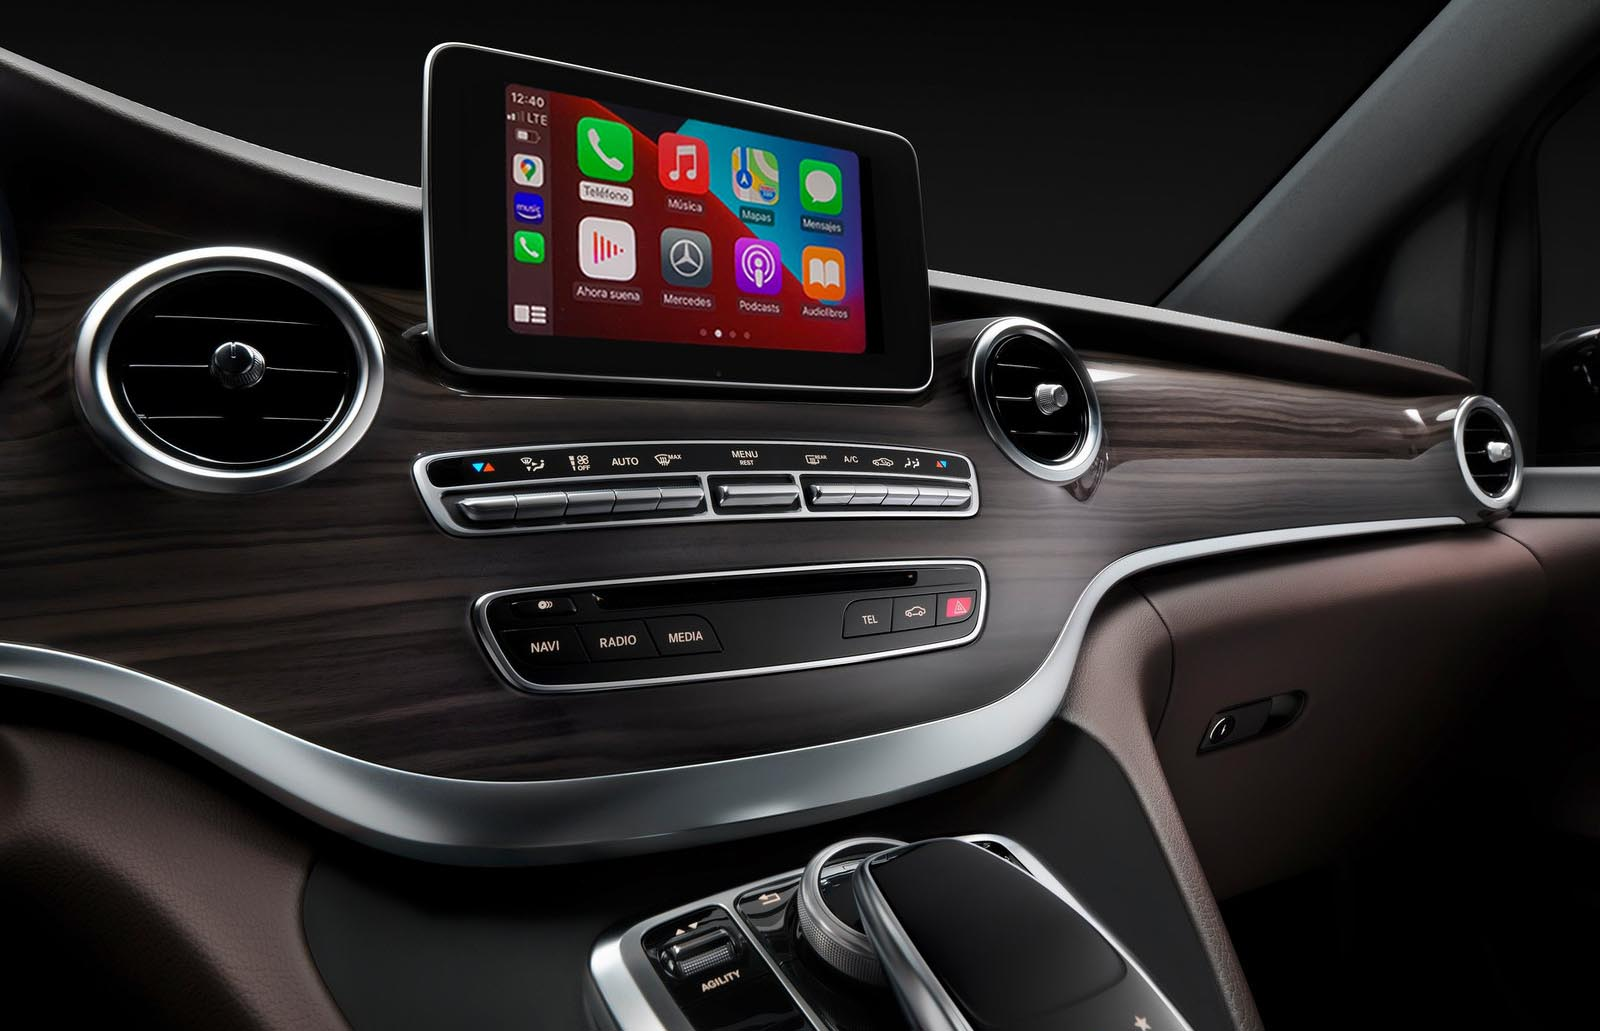 Como poner CarPlay en Mercedes Clase V W447, modelos compatibles y pantallas Android disponibles